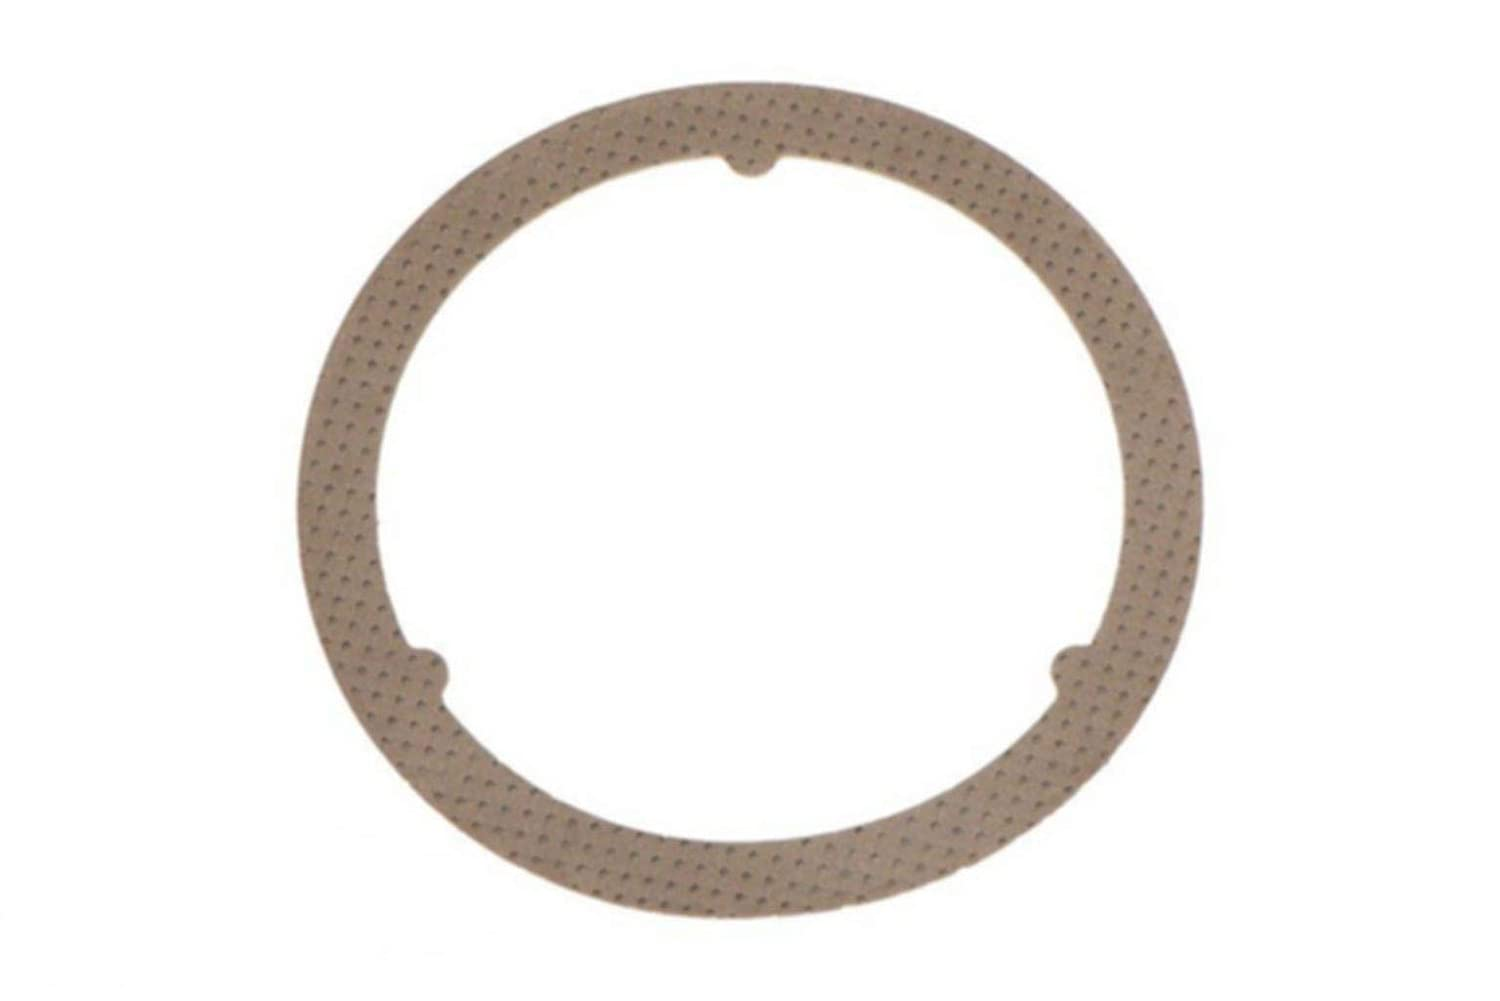 Quality Exhaust Pipe Gasket 2007-2019 2500 RАМ 5 Industry No. 1 3500 Charlotte Mall 4500